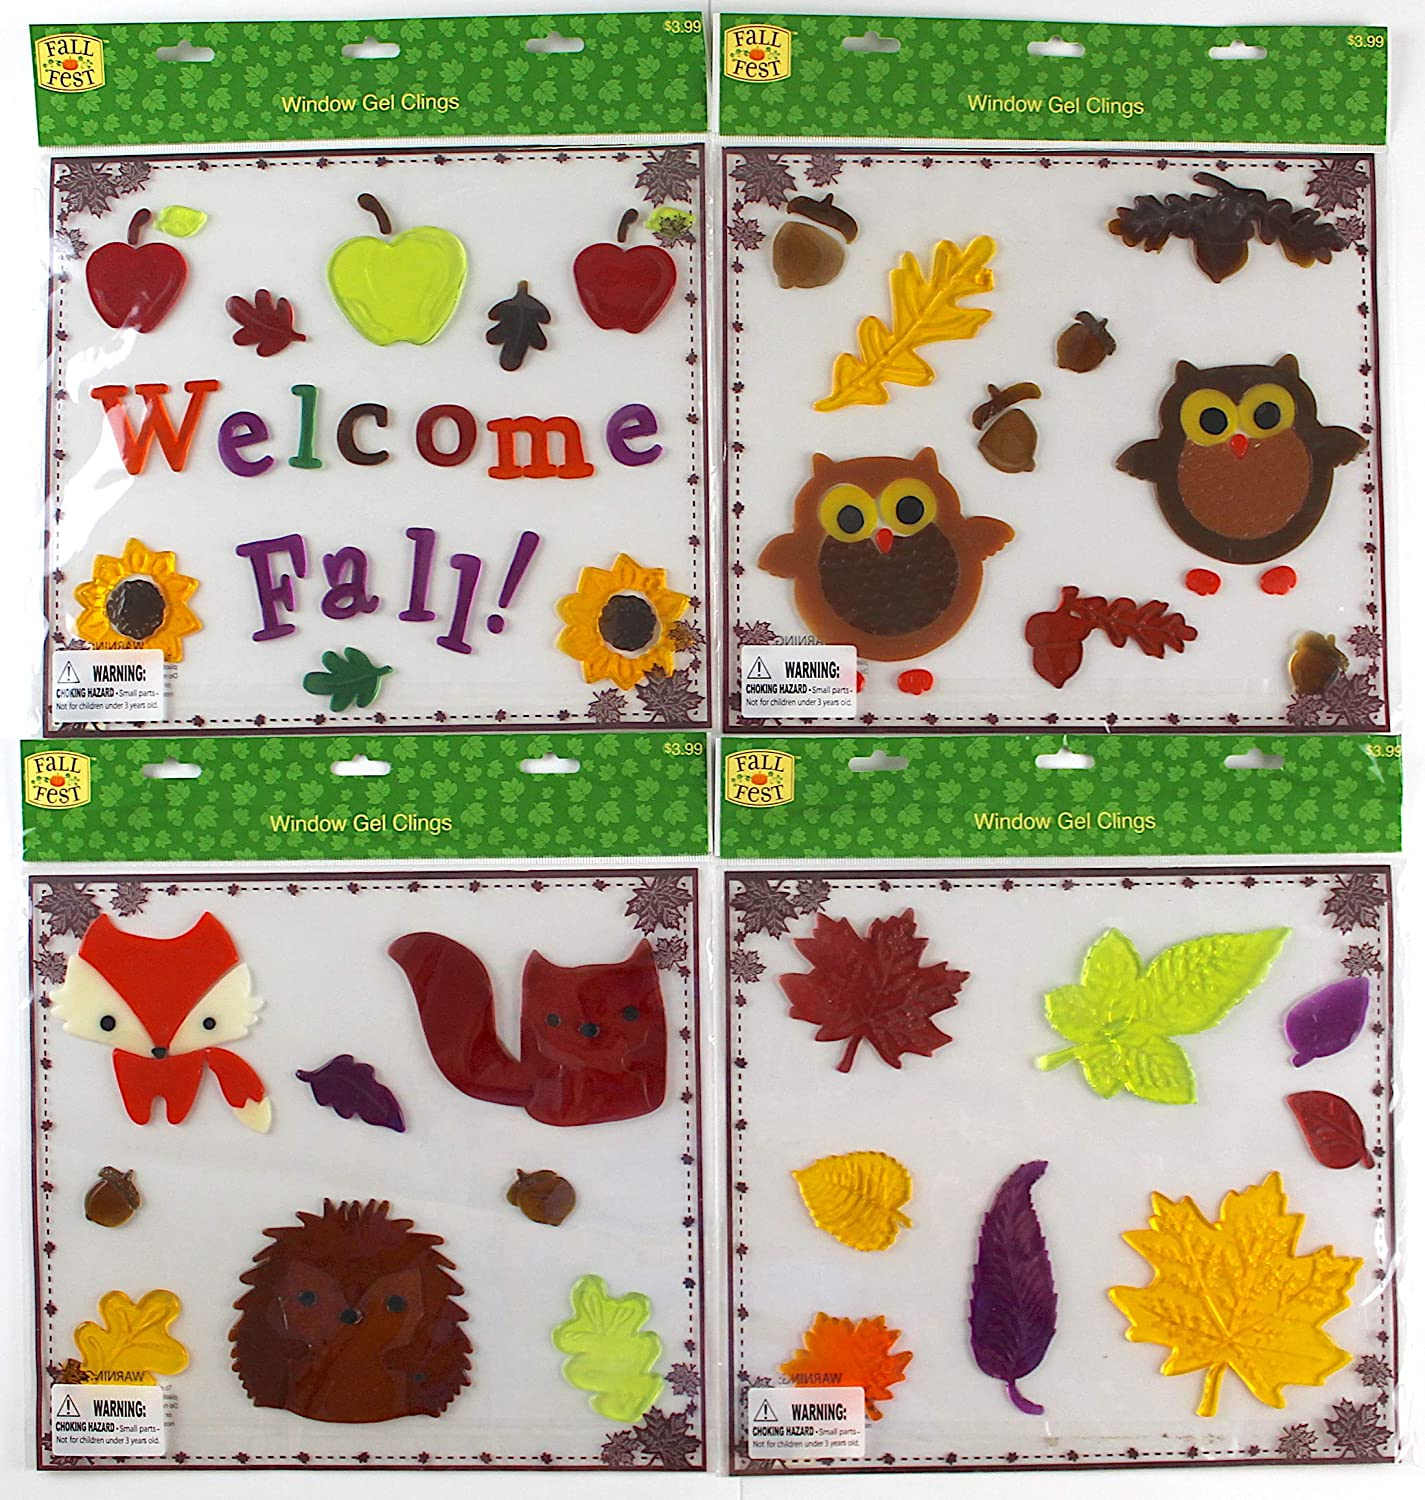 Assorted Variety Fall Gel Clings: Woodland Creatures Owls Fox Hedgehog Squirrel Leaves Decorations for Home Office Windows Mirrors and More Magic Creations